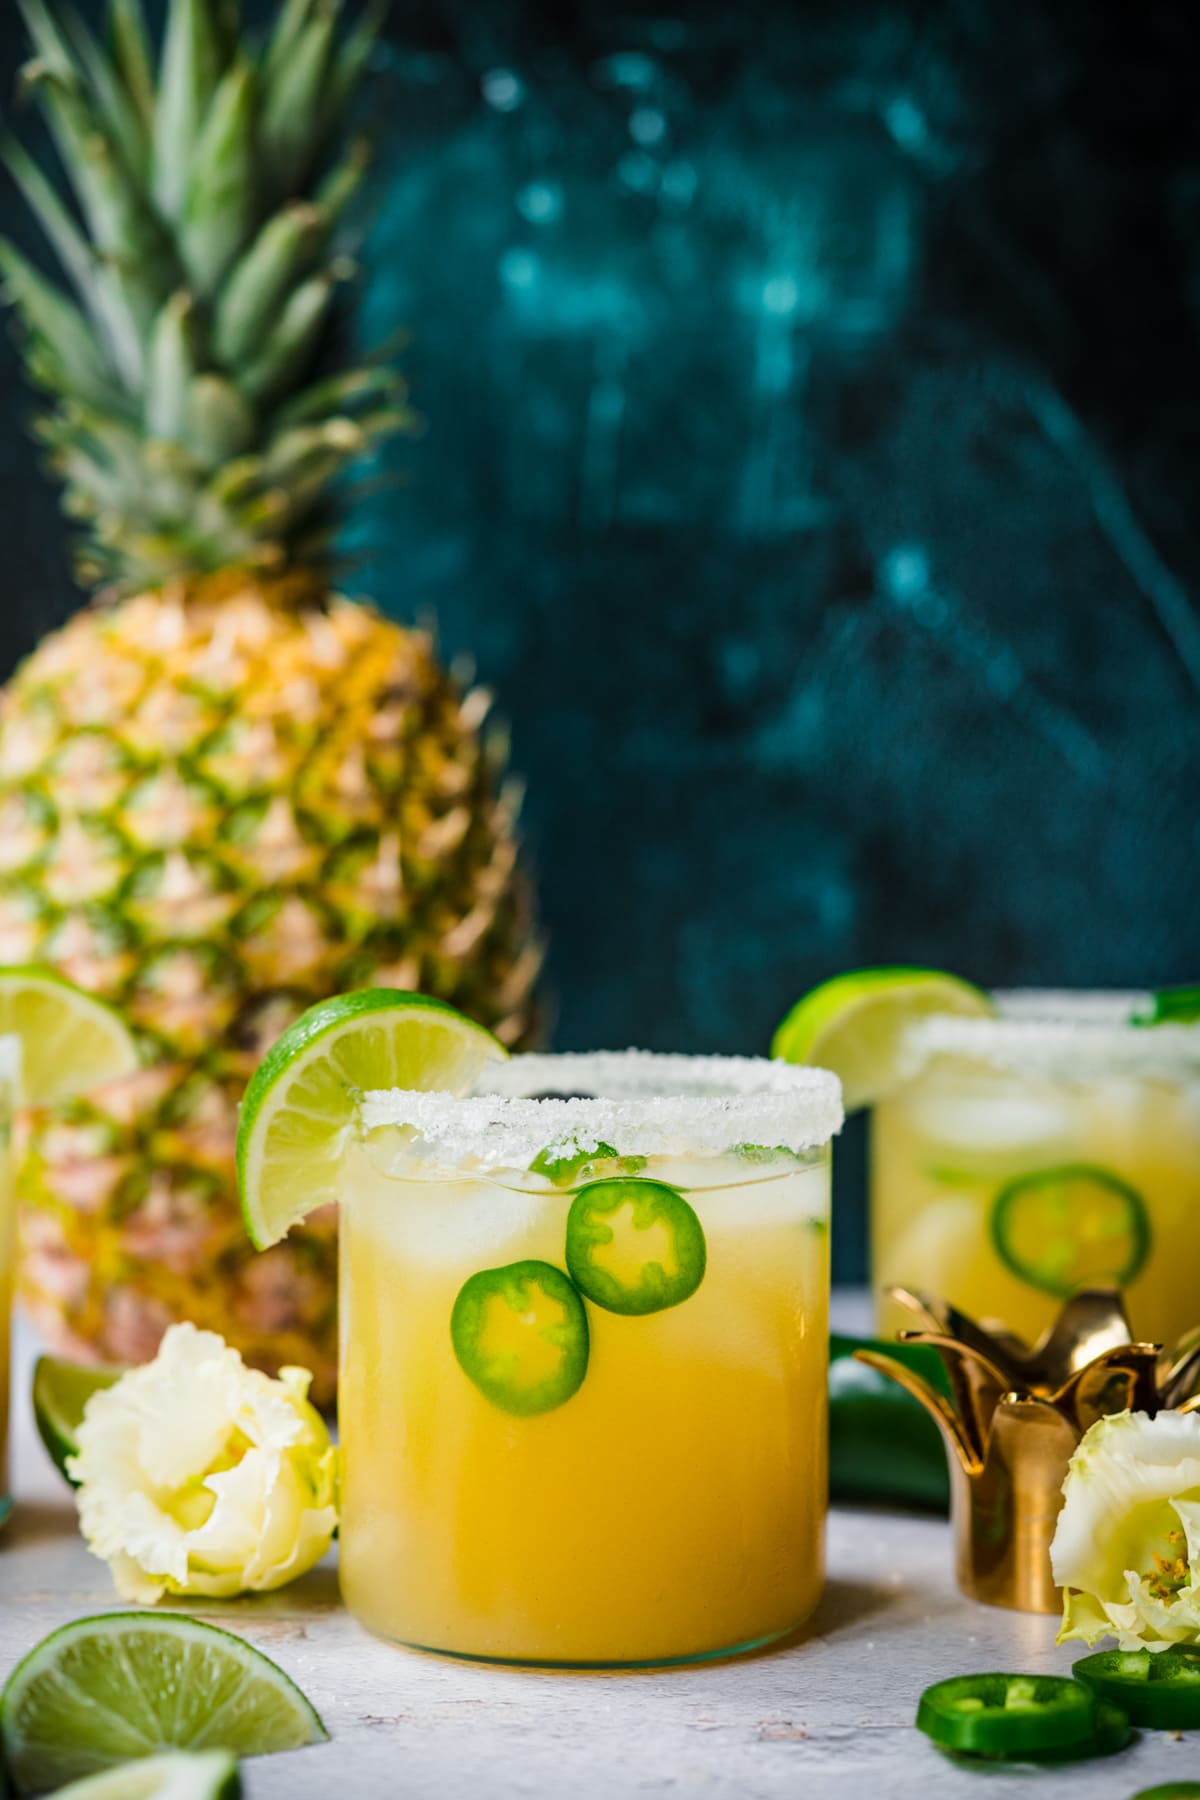 side view of pineapple jalapeño margarita in glass rimmed with salt with a fresh pineapple in background.